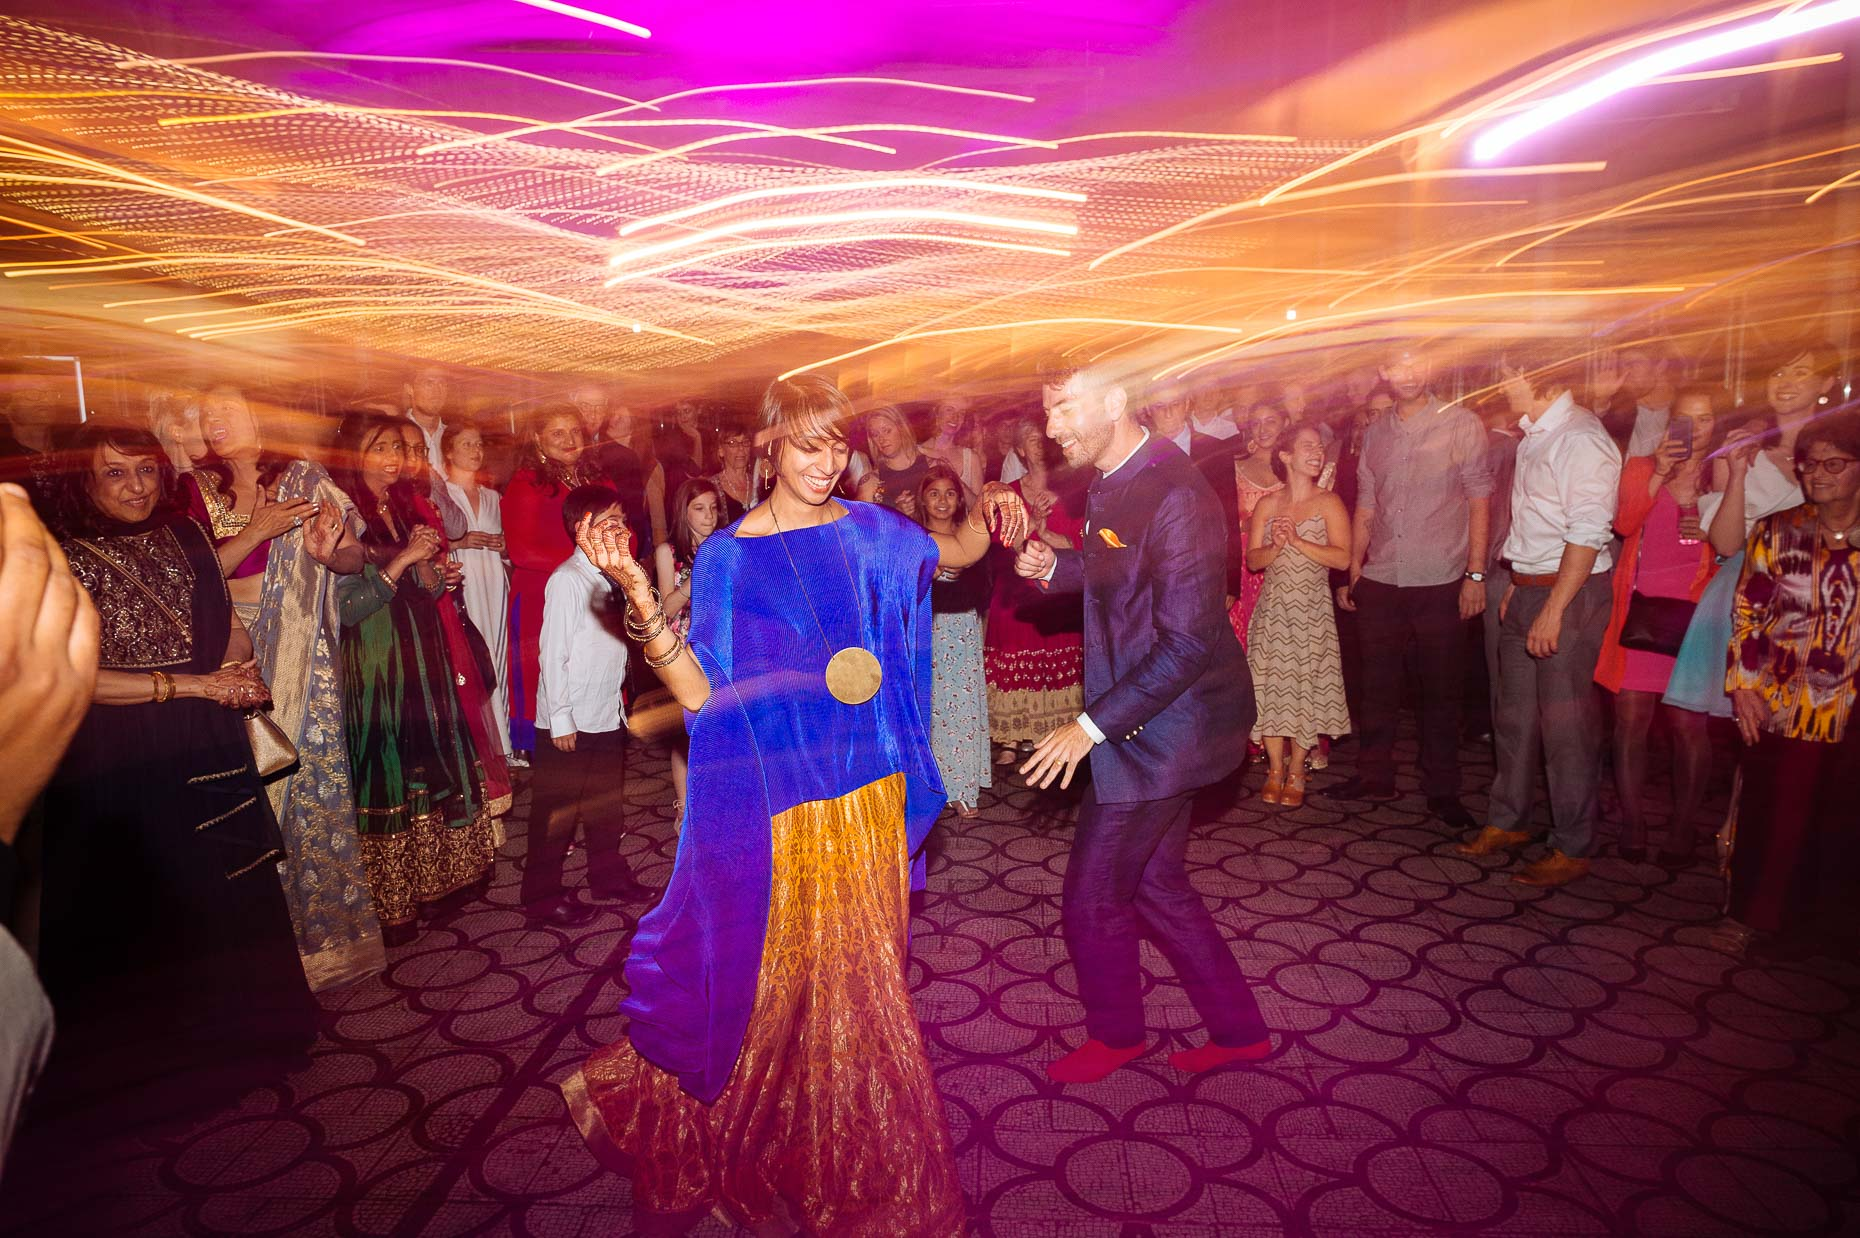 pooja-dan-v-and-a-museum-childhood-dancefloor-first-dance-wedding-photography-27